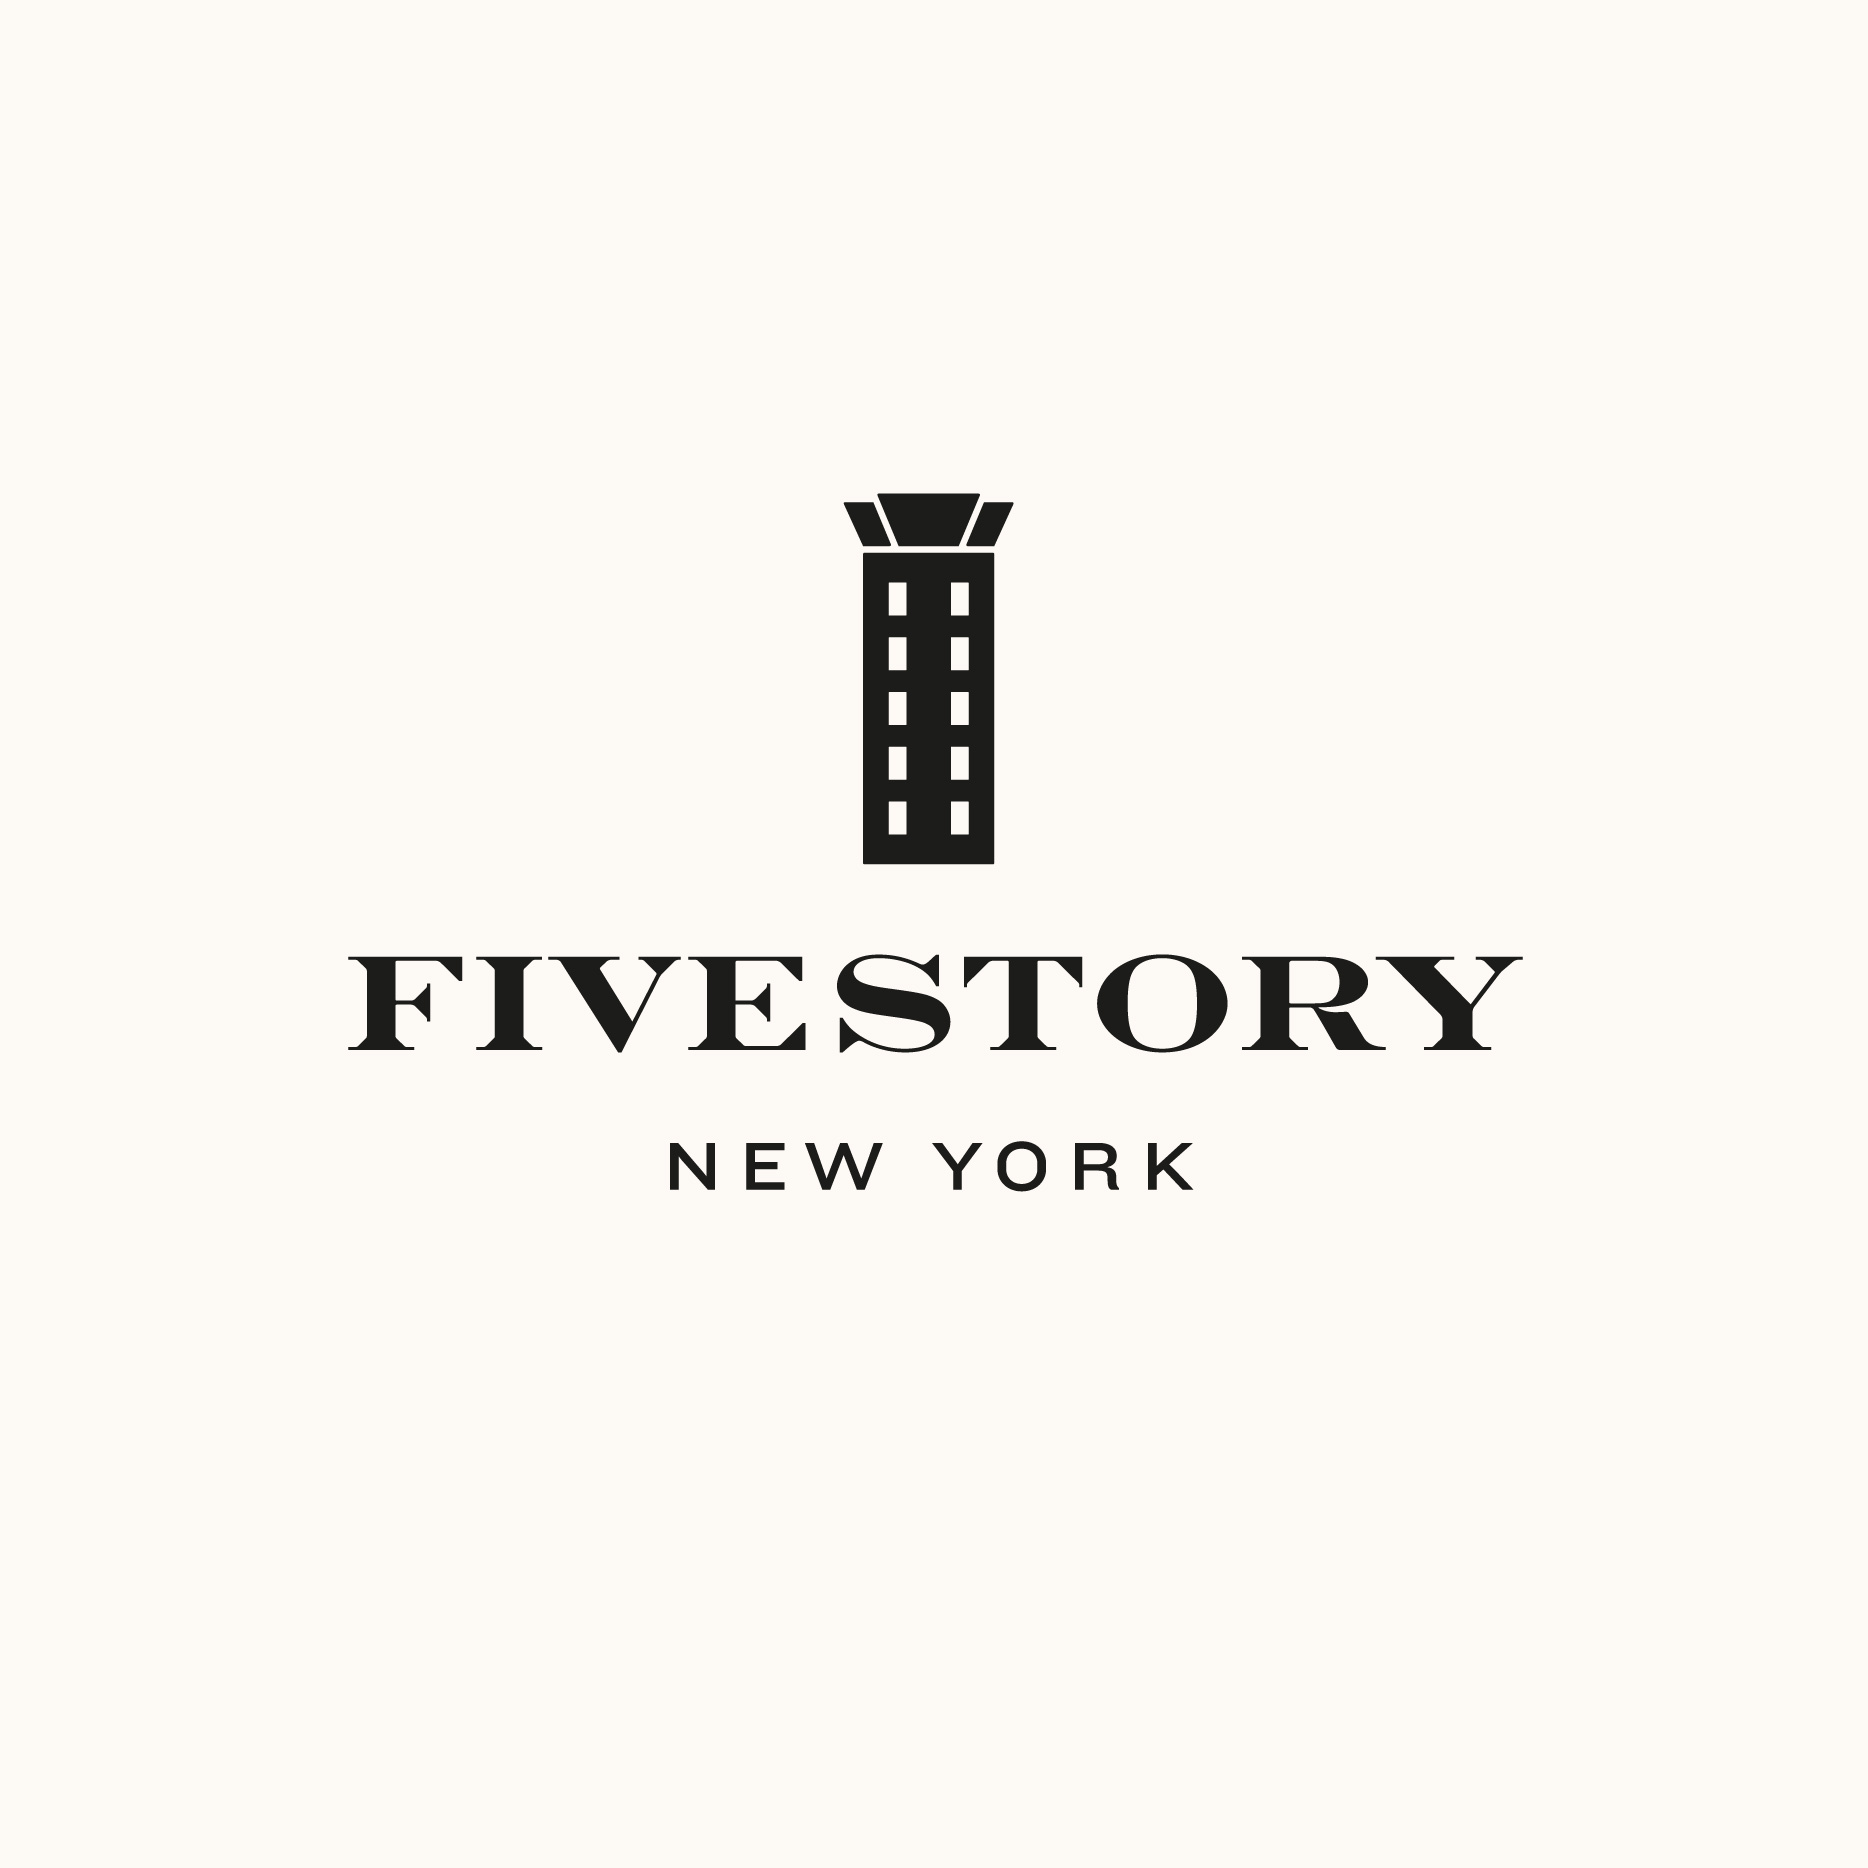 fivestory_ident_th_try2f